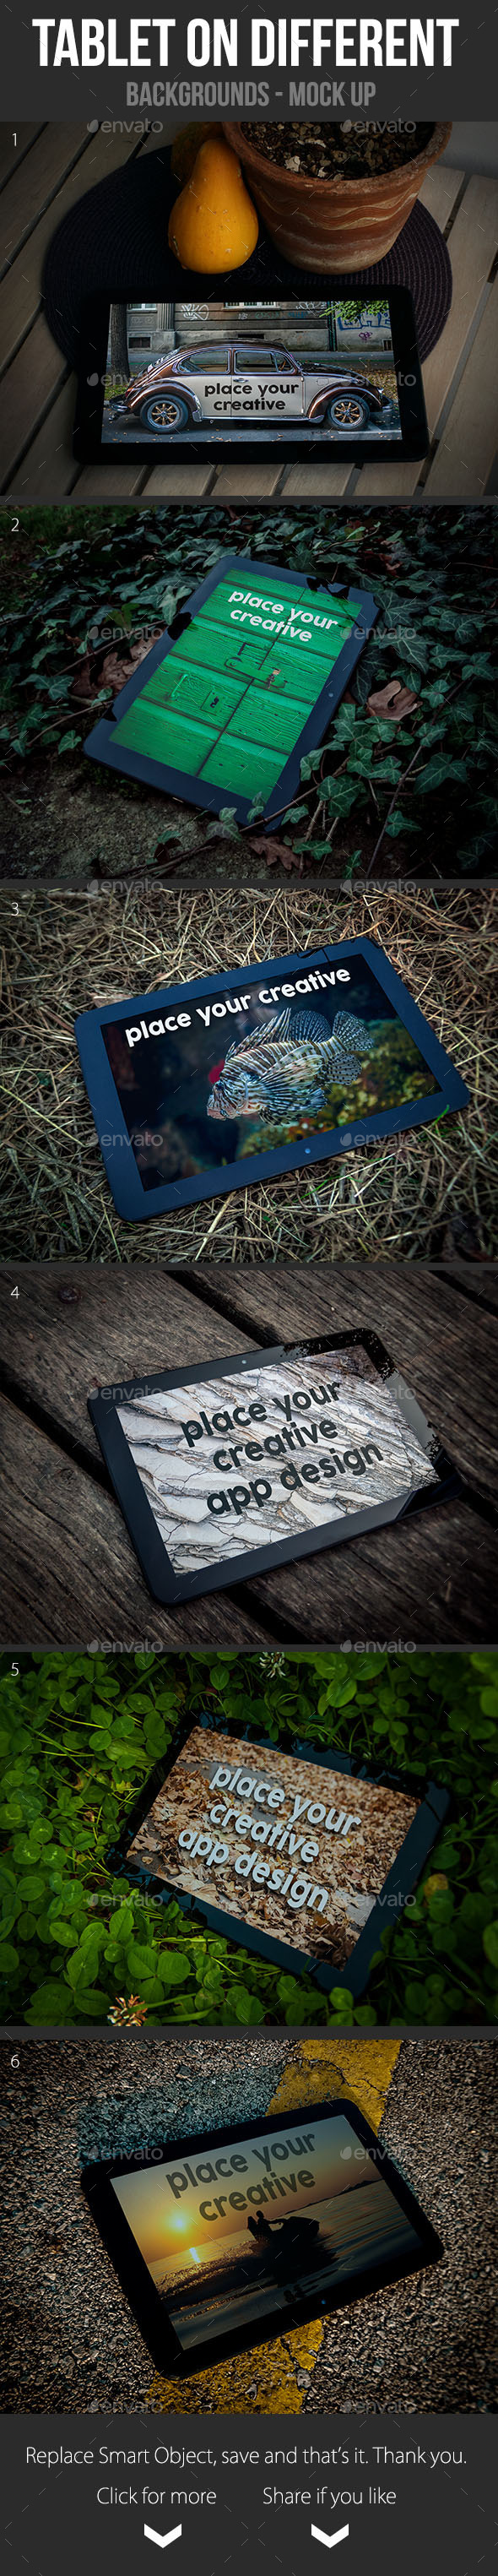 Tablet on Different Backgrounds Mock Up - Mobile Displays